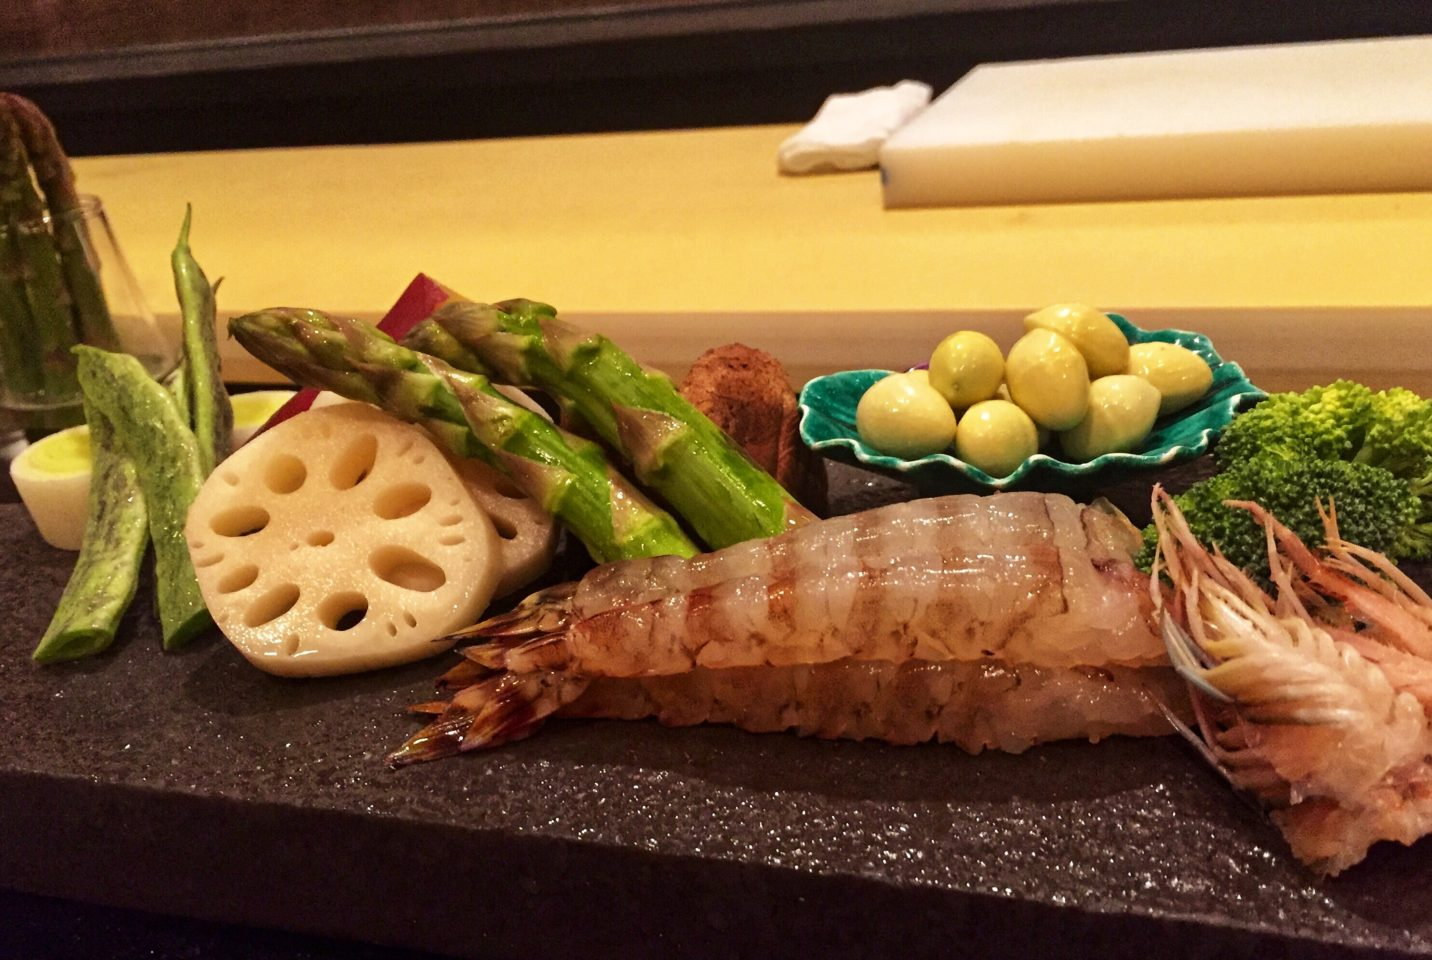 Japan Culinary Experiences ~ Presentation of the fresh ingredients to be dipped in the airy batter and deep fried in a light and fragrant oil for our Tempura dinner at the Hanagatami Restaurant in Osaka